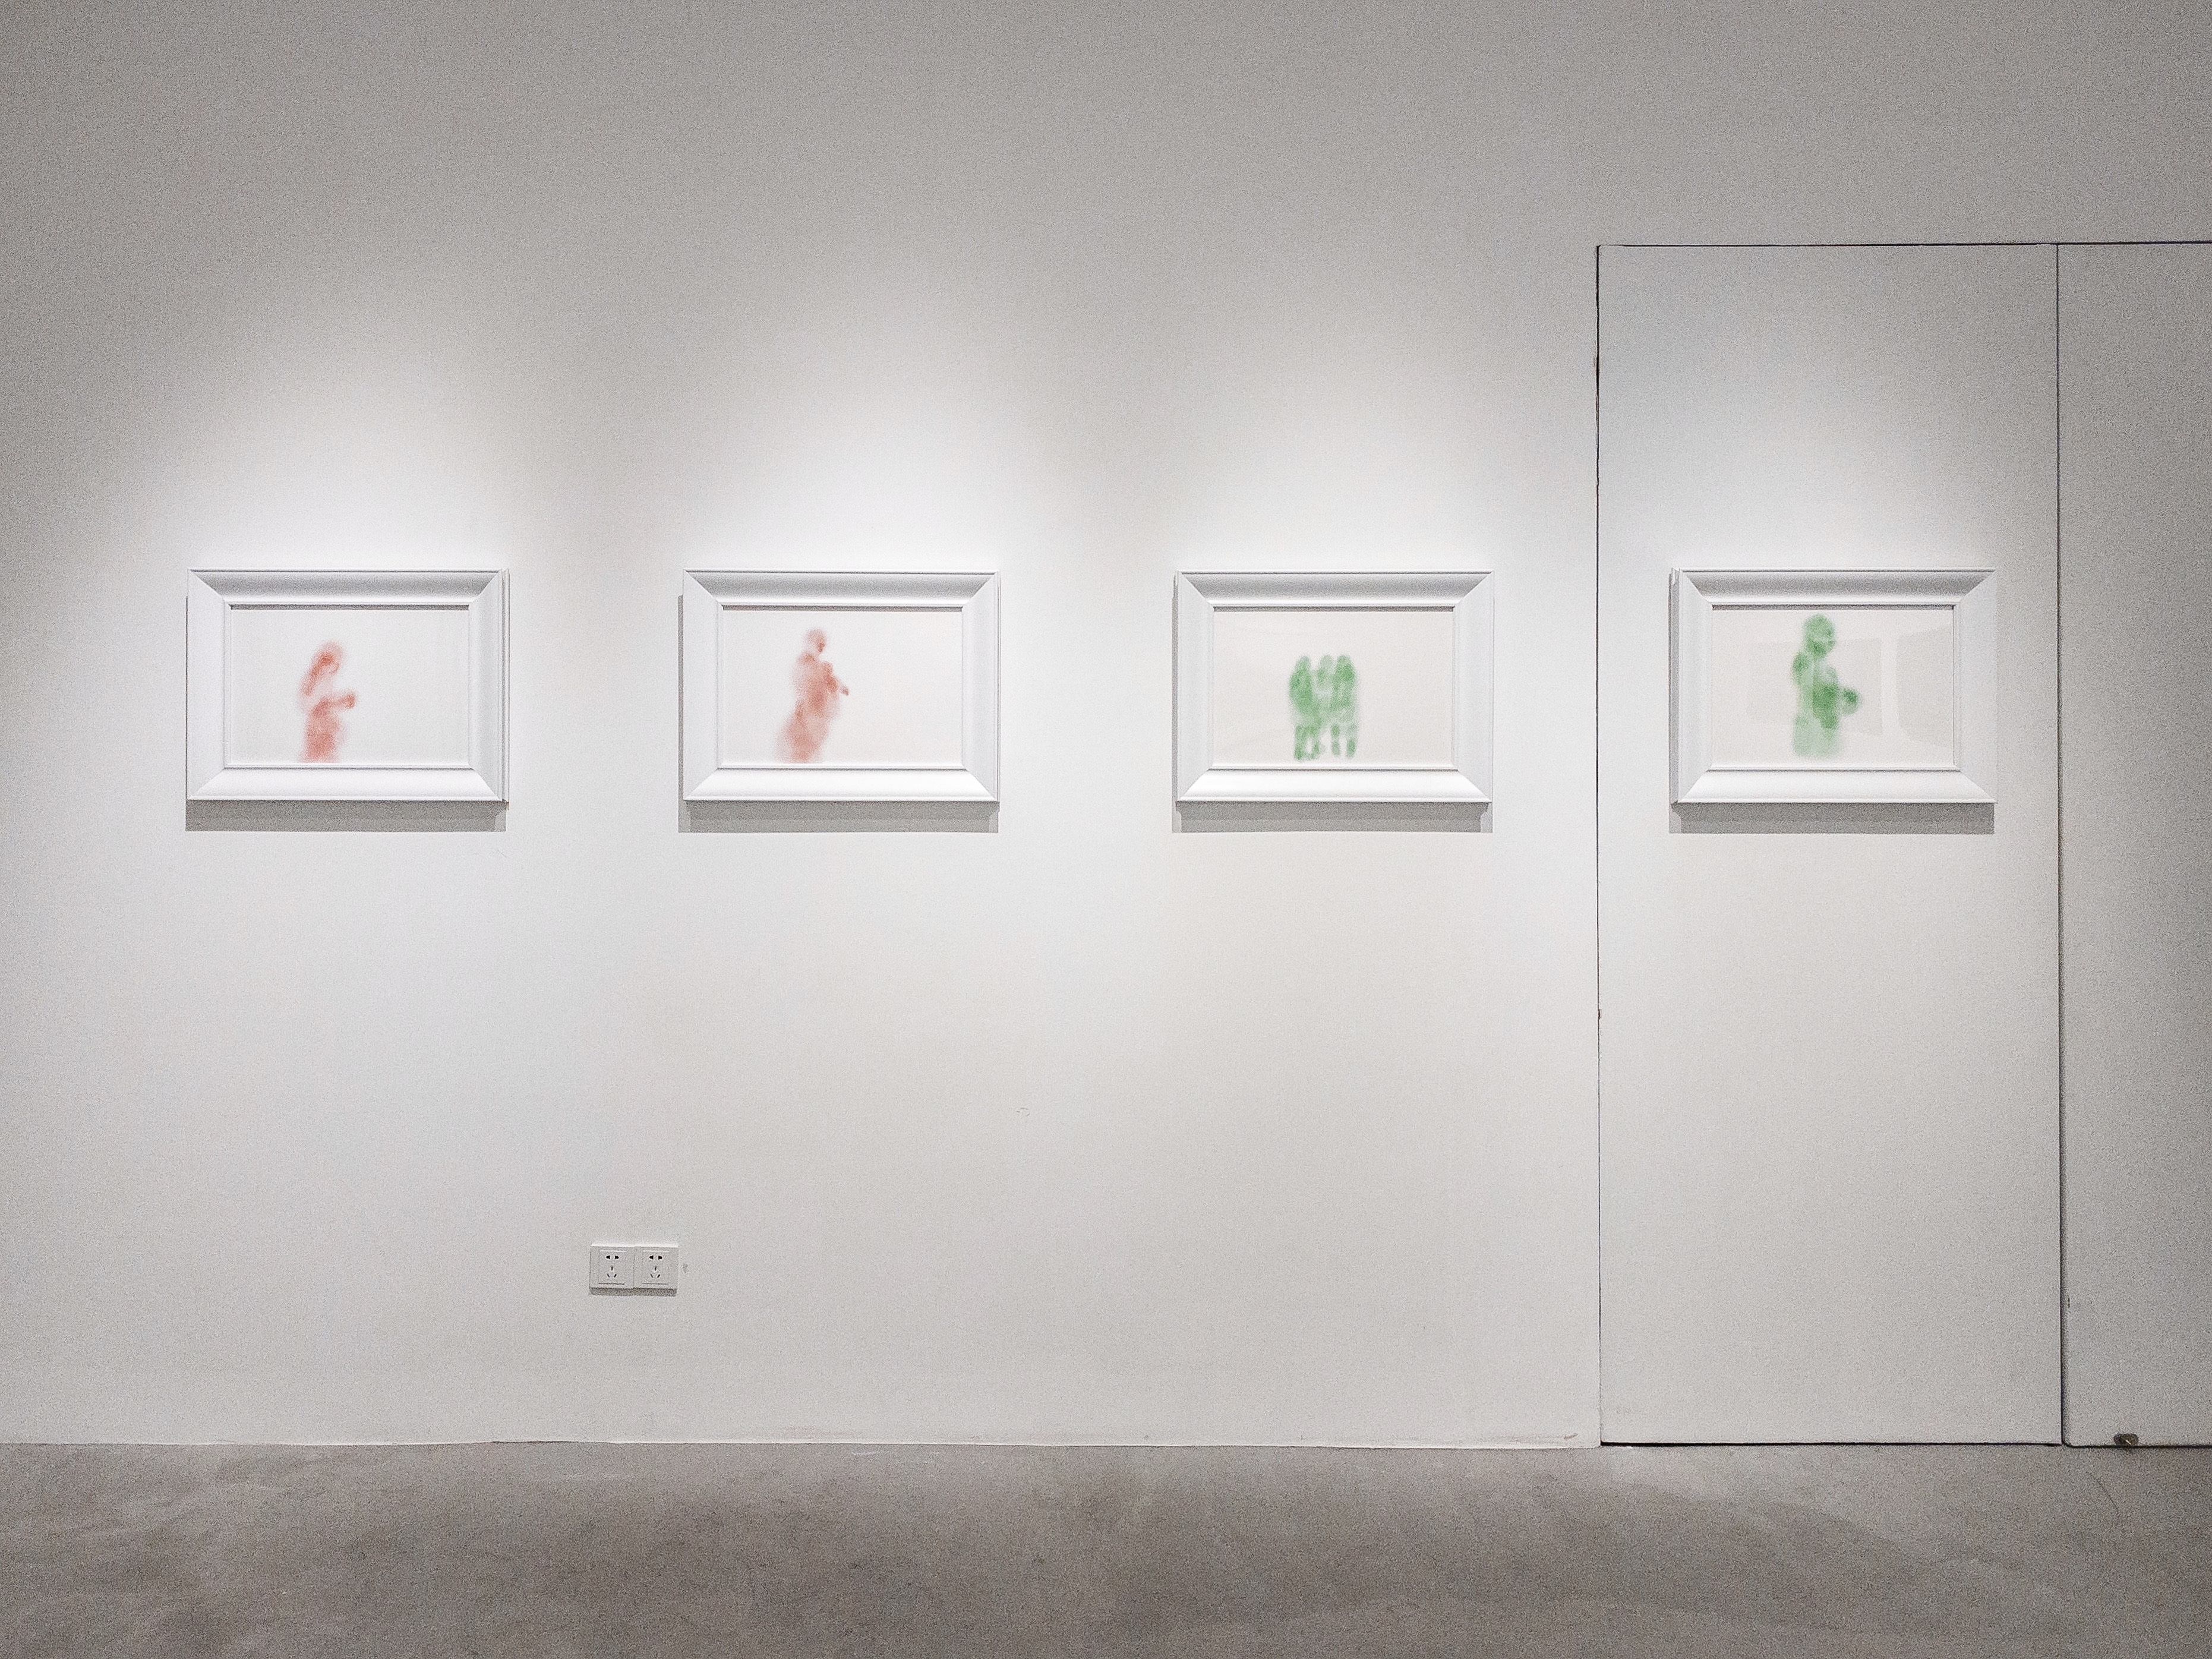 Installation view of Concealed Light